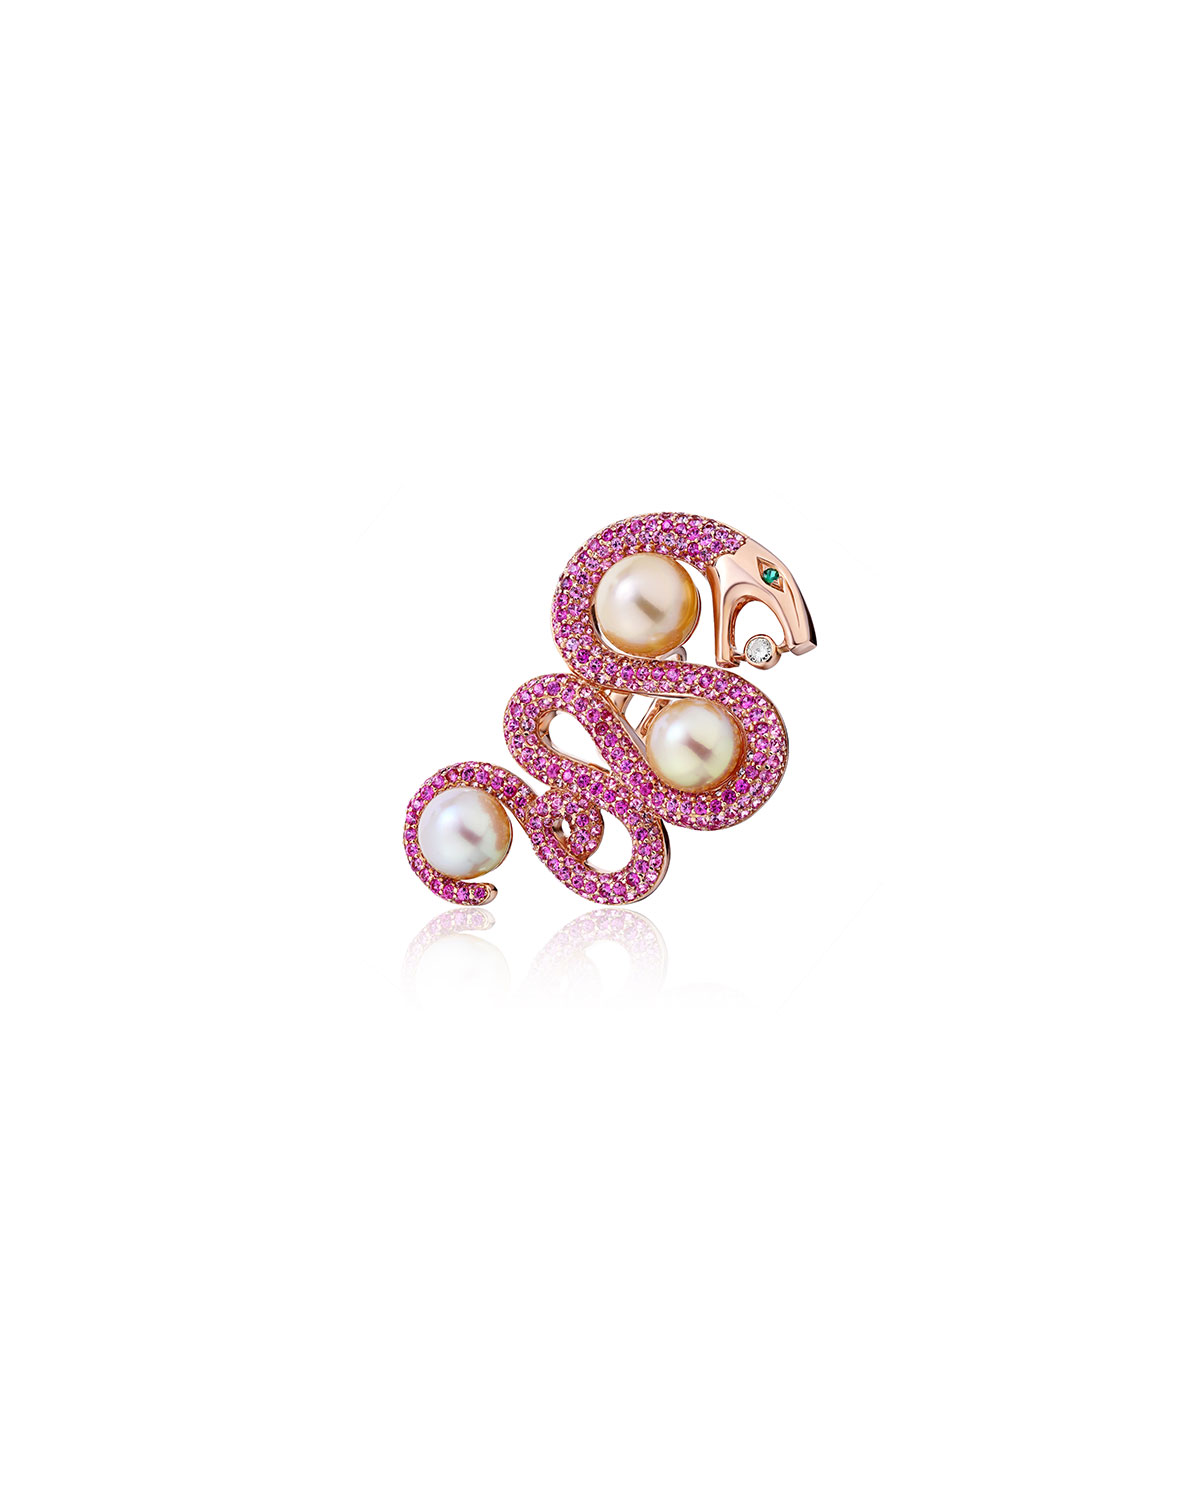 18k Rose Gold Pink Sapphire and Pearl Snake Ring